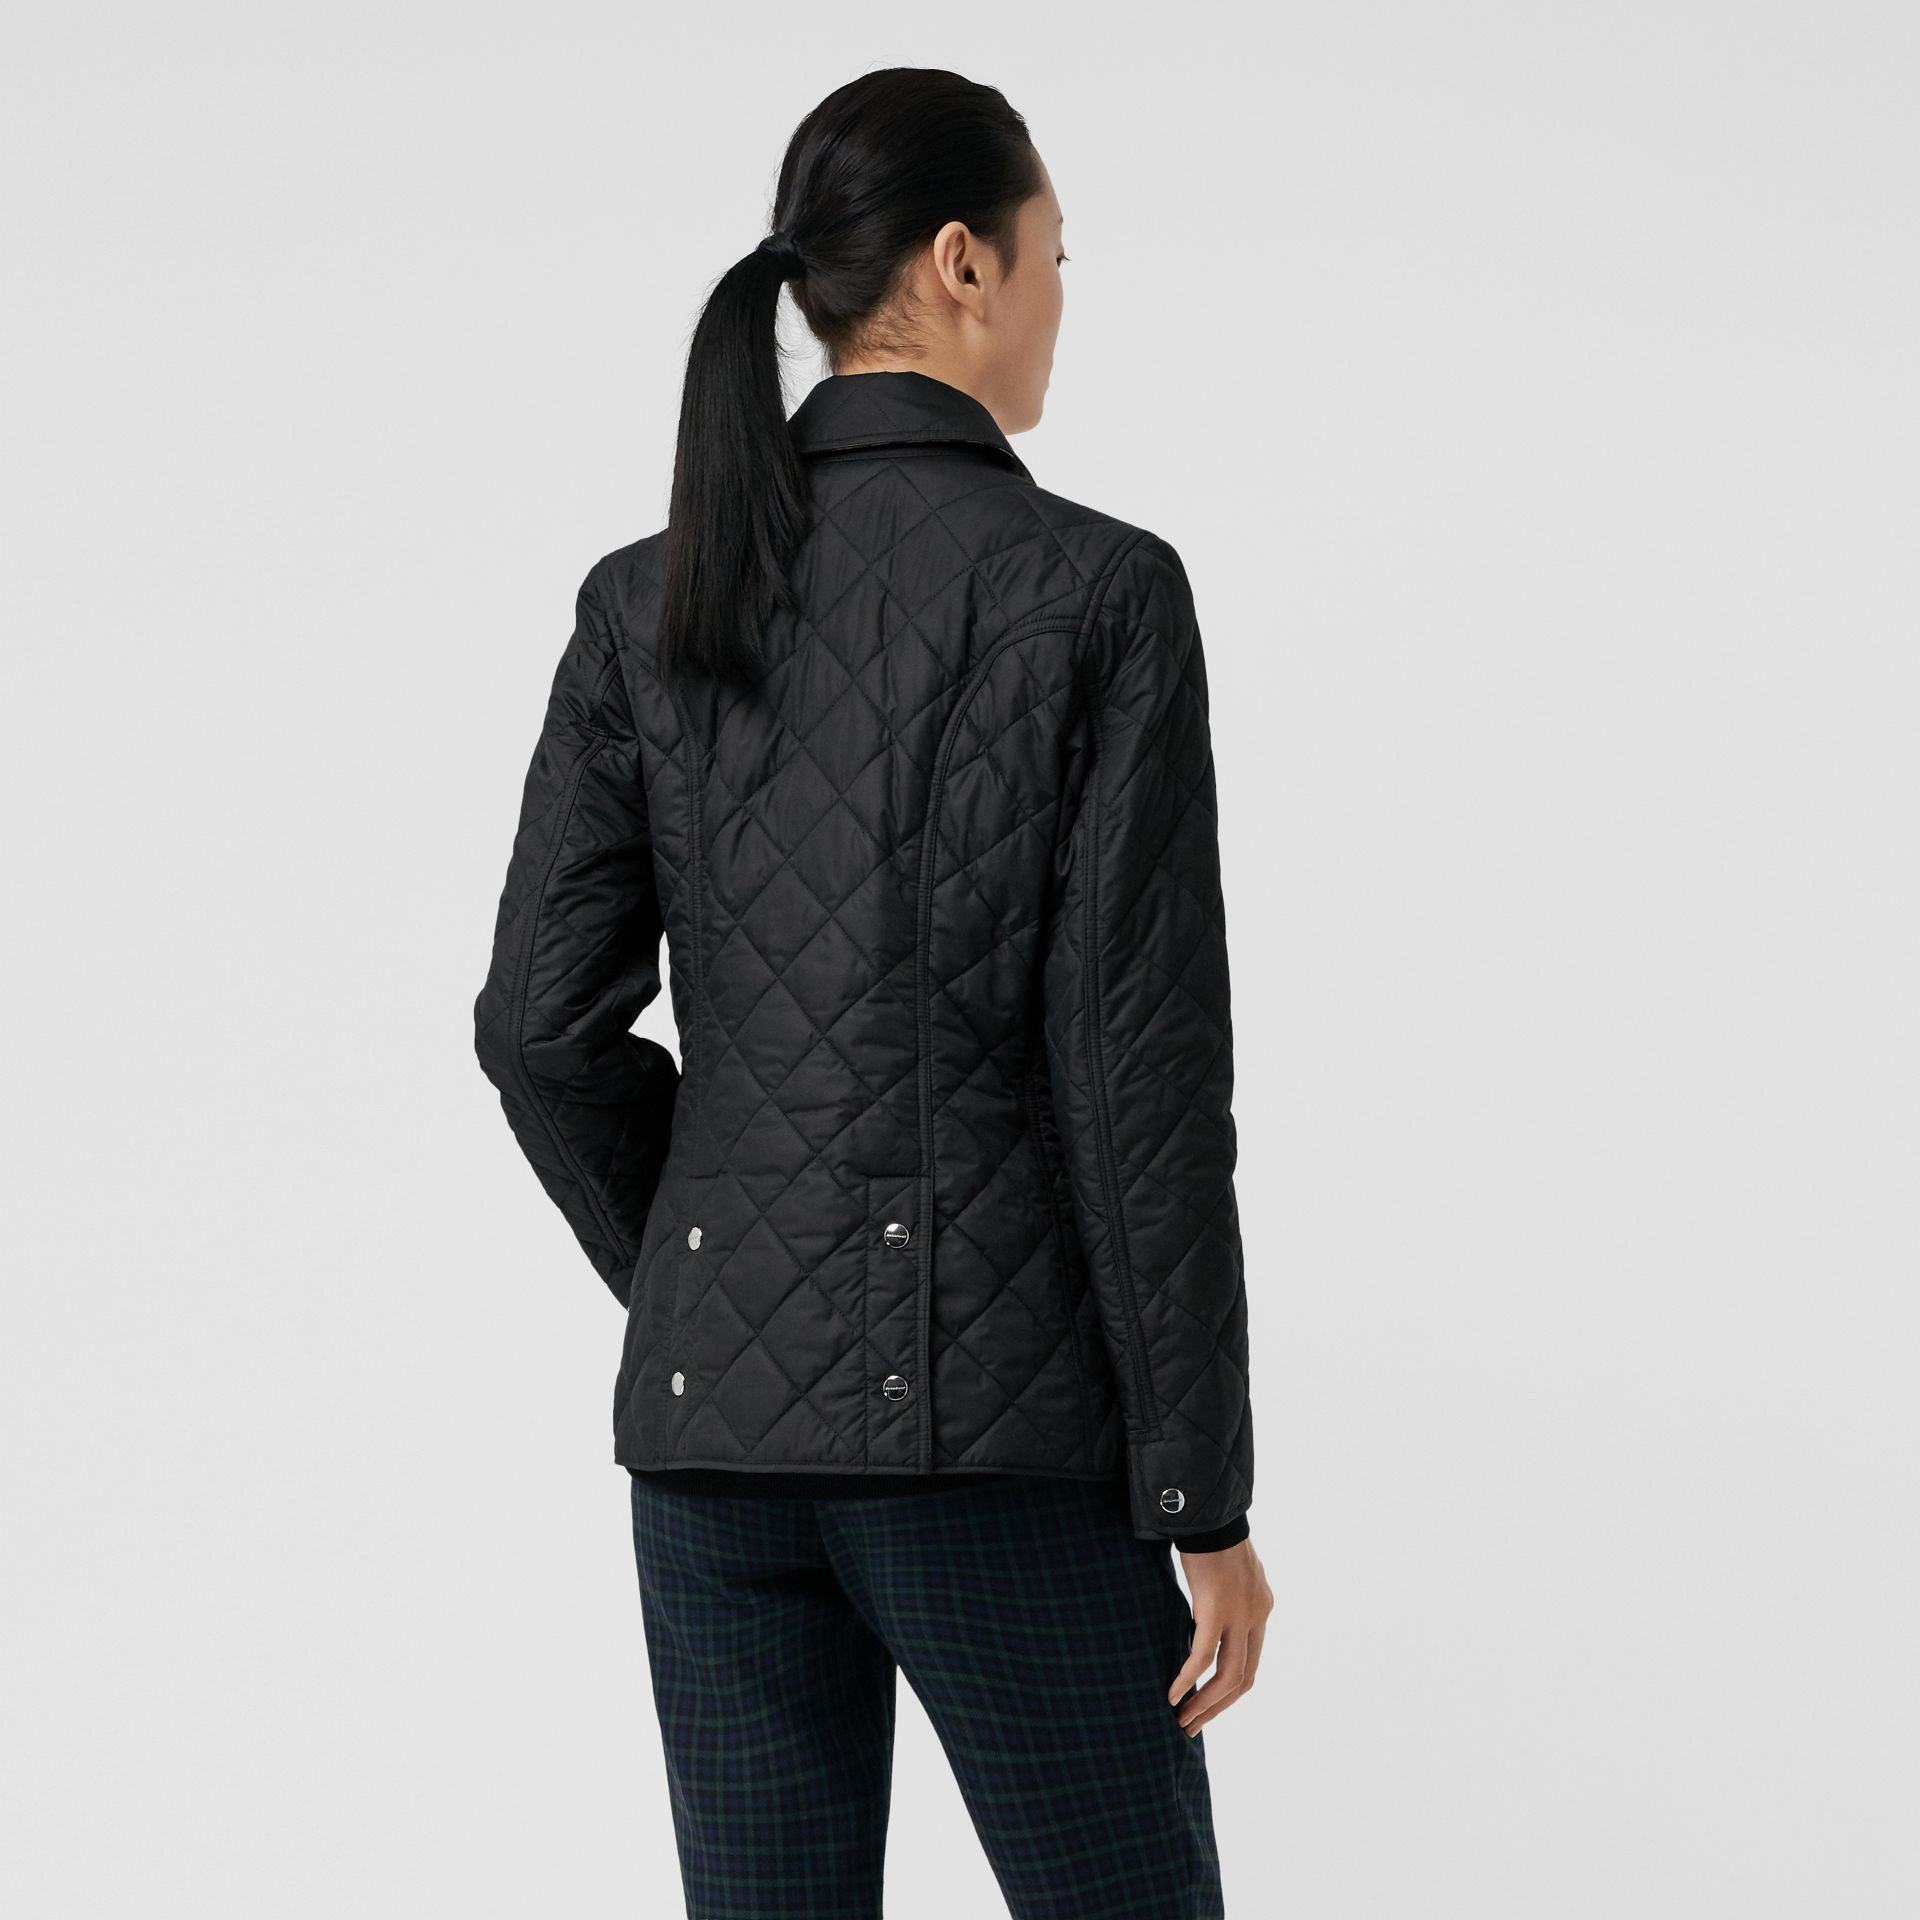 Embroidered Crest Diamond Quilted Jacket in Black - Women | Burberry United Kingdom - gallery image 2